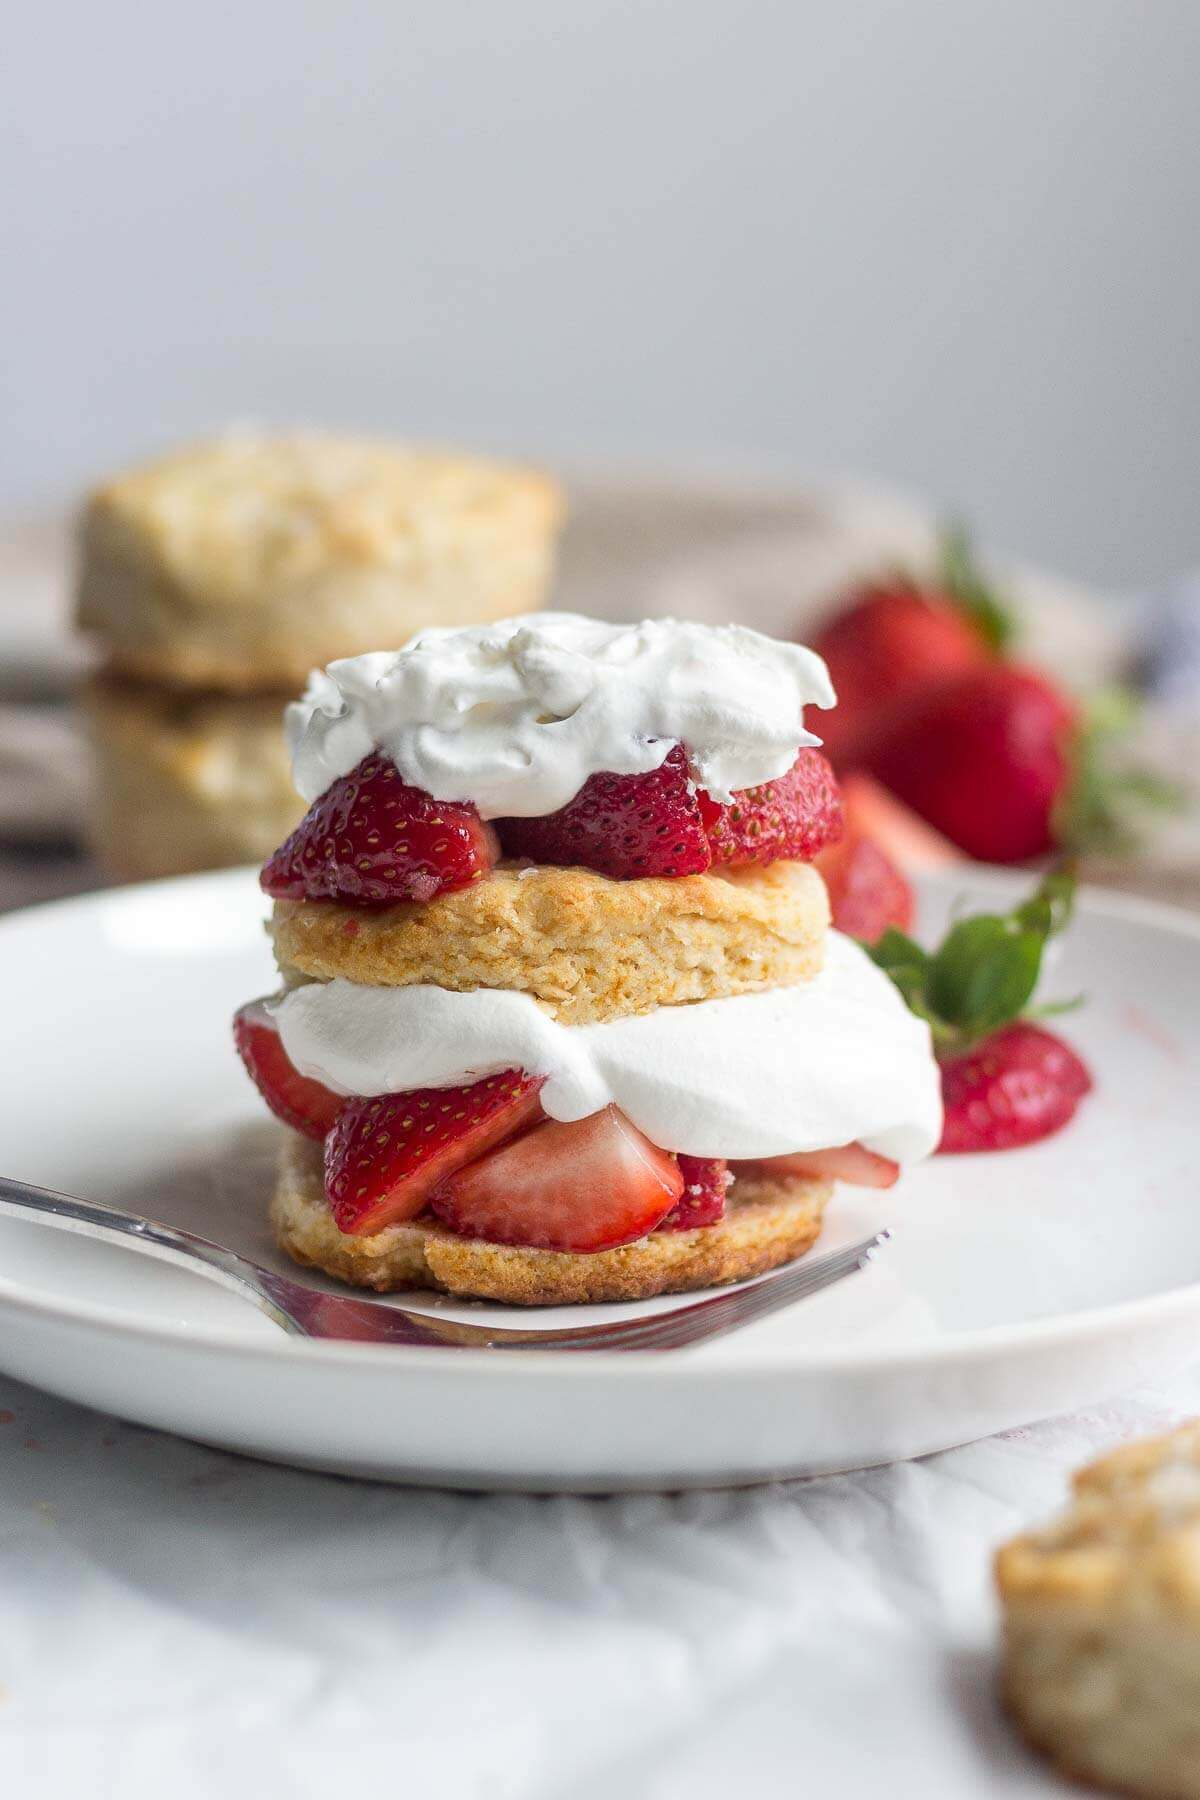 Healthy strawberry shortcake! Made with fresh fruit and real ingredients, this skinny strawberry shortcake is a guilt free dessert you can eat all summer long!